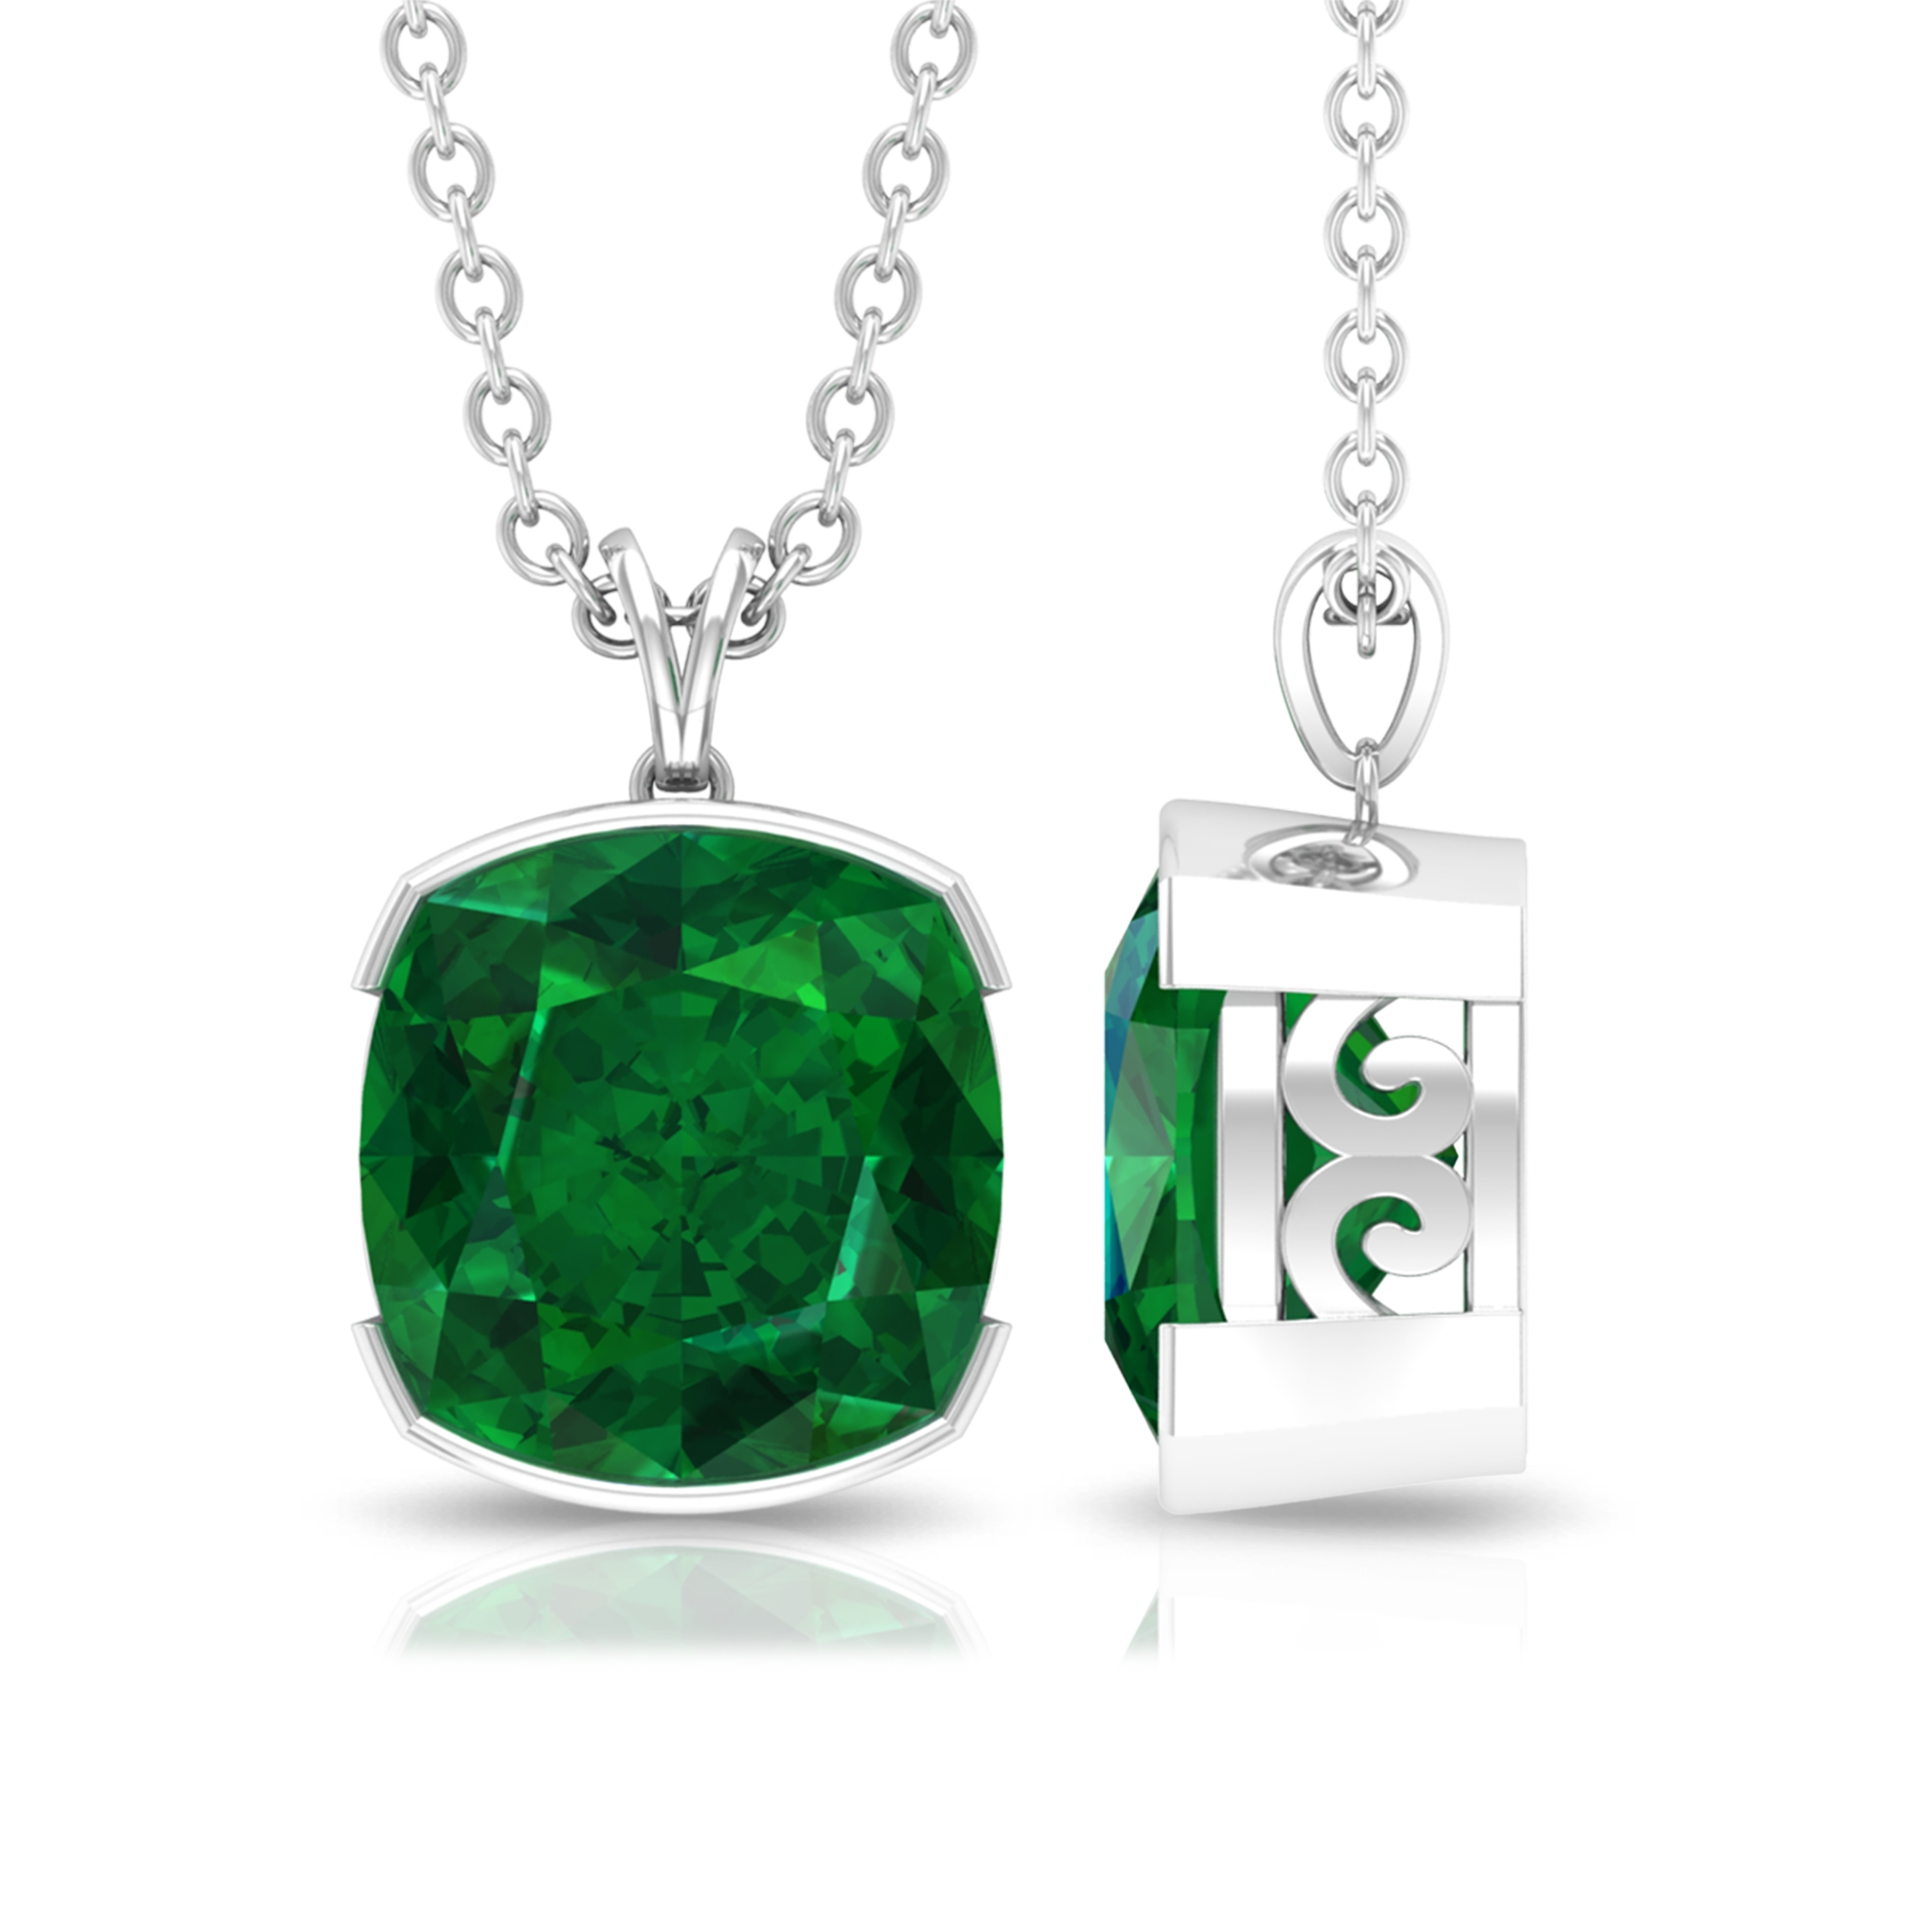 8 MM Cushion Cut Emerald Solitaire Pendant in Half Bezel Setting with Rabbit Ear Bail